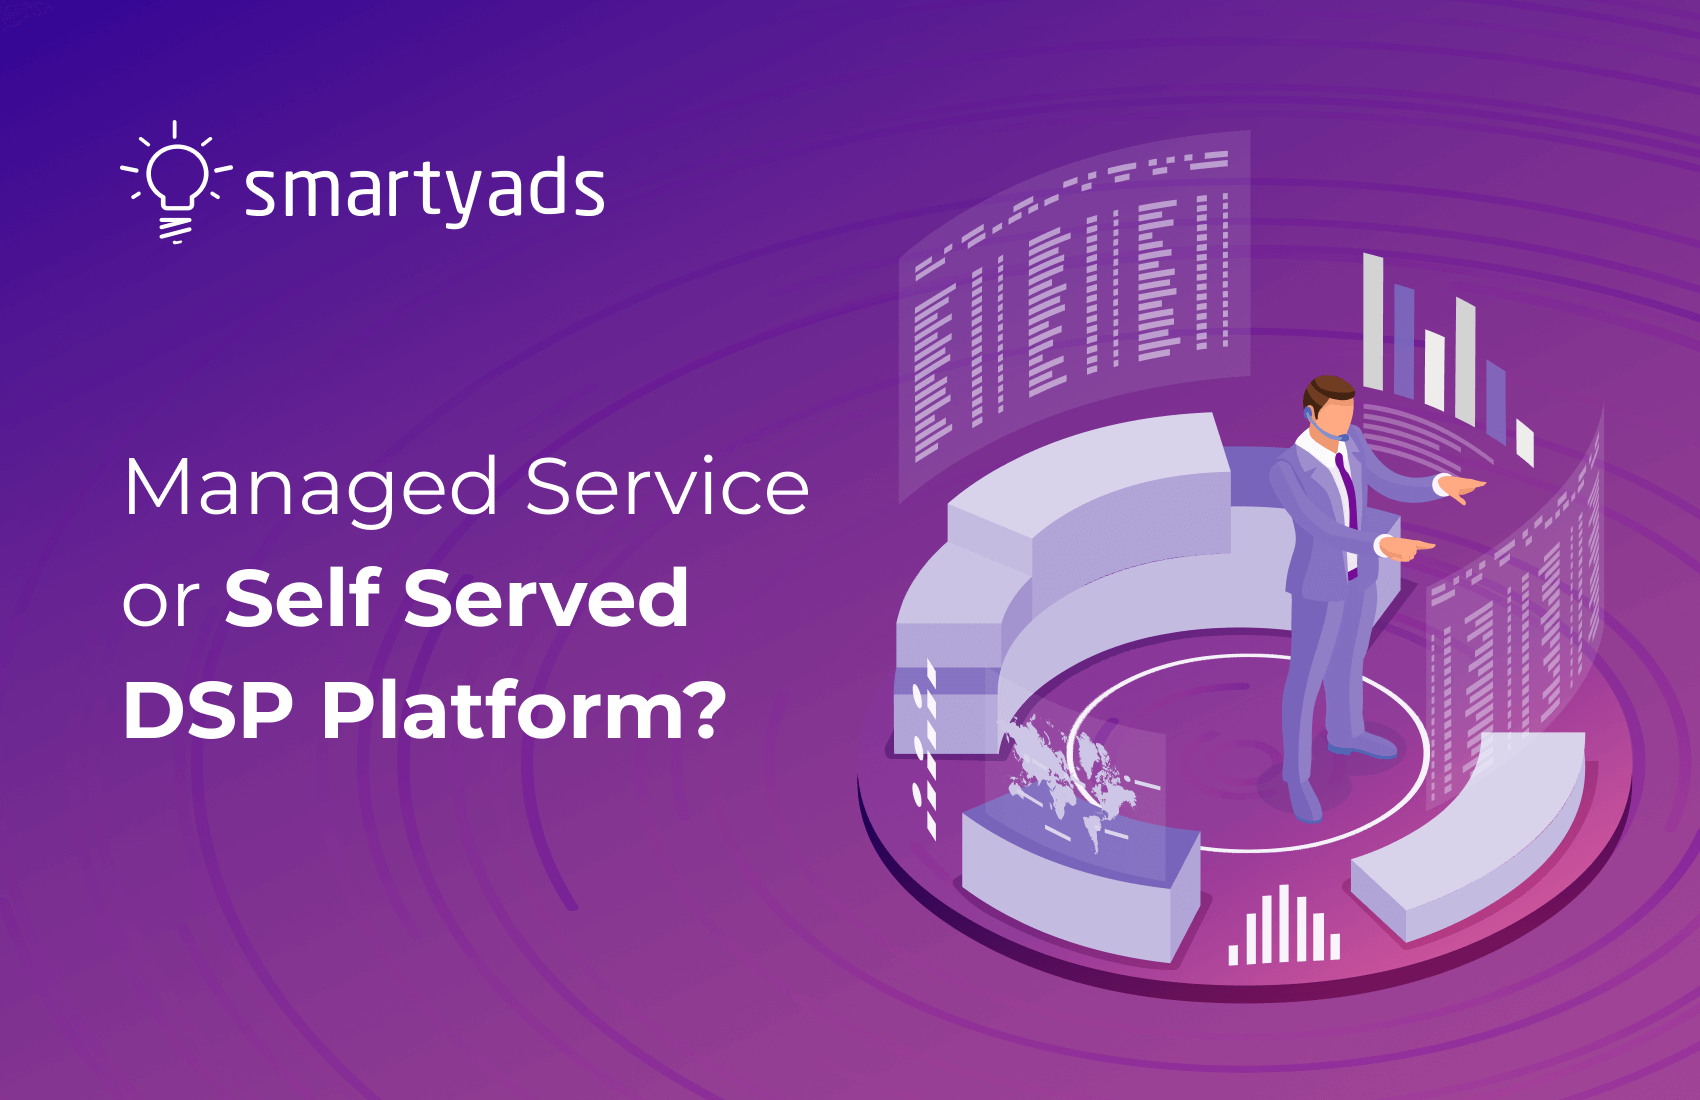 Managed Service to Self-Serve Platform: How to Choose between Two DSP Options?